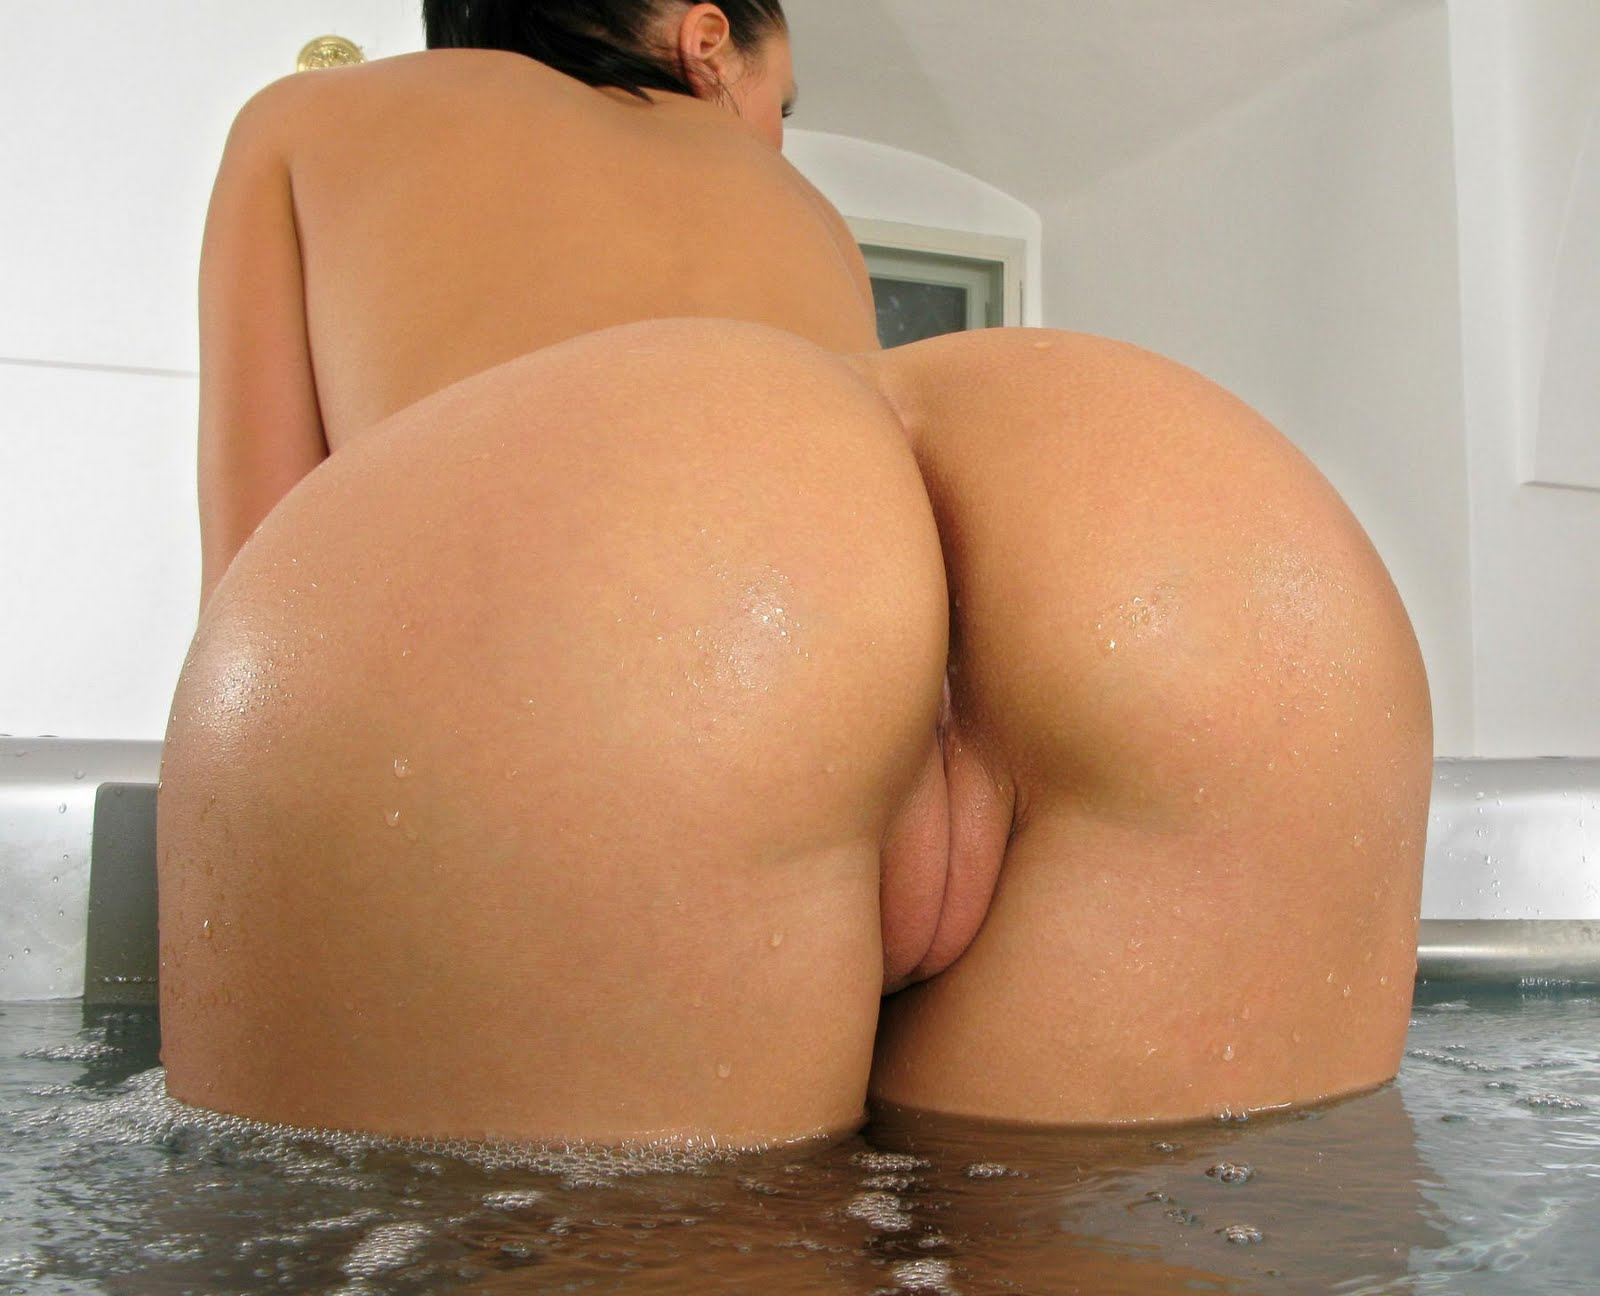 Big Hot Ass And Pussy